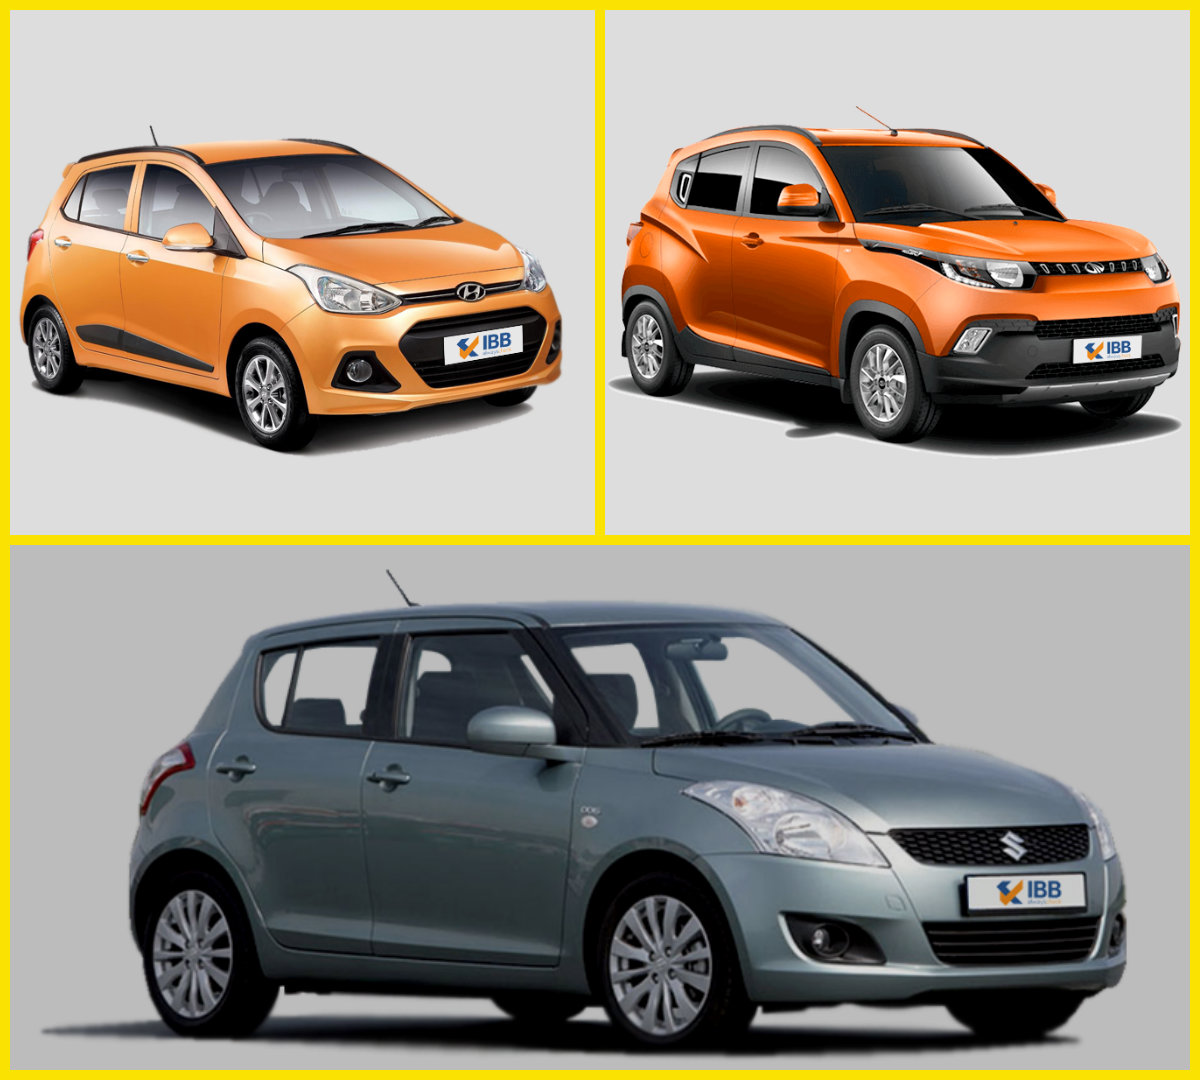 Mahindra KUV 100 Vs Maruti Suzuki Swift Vs Hyundai Grand i10